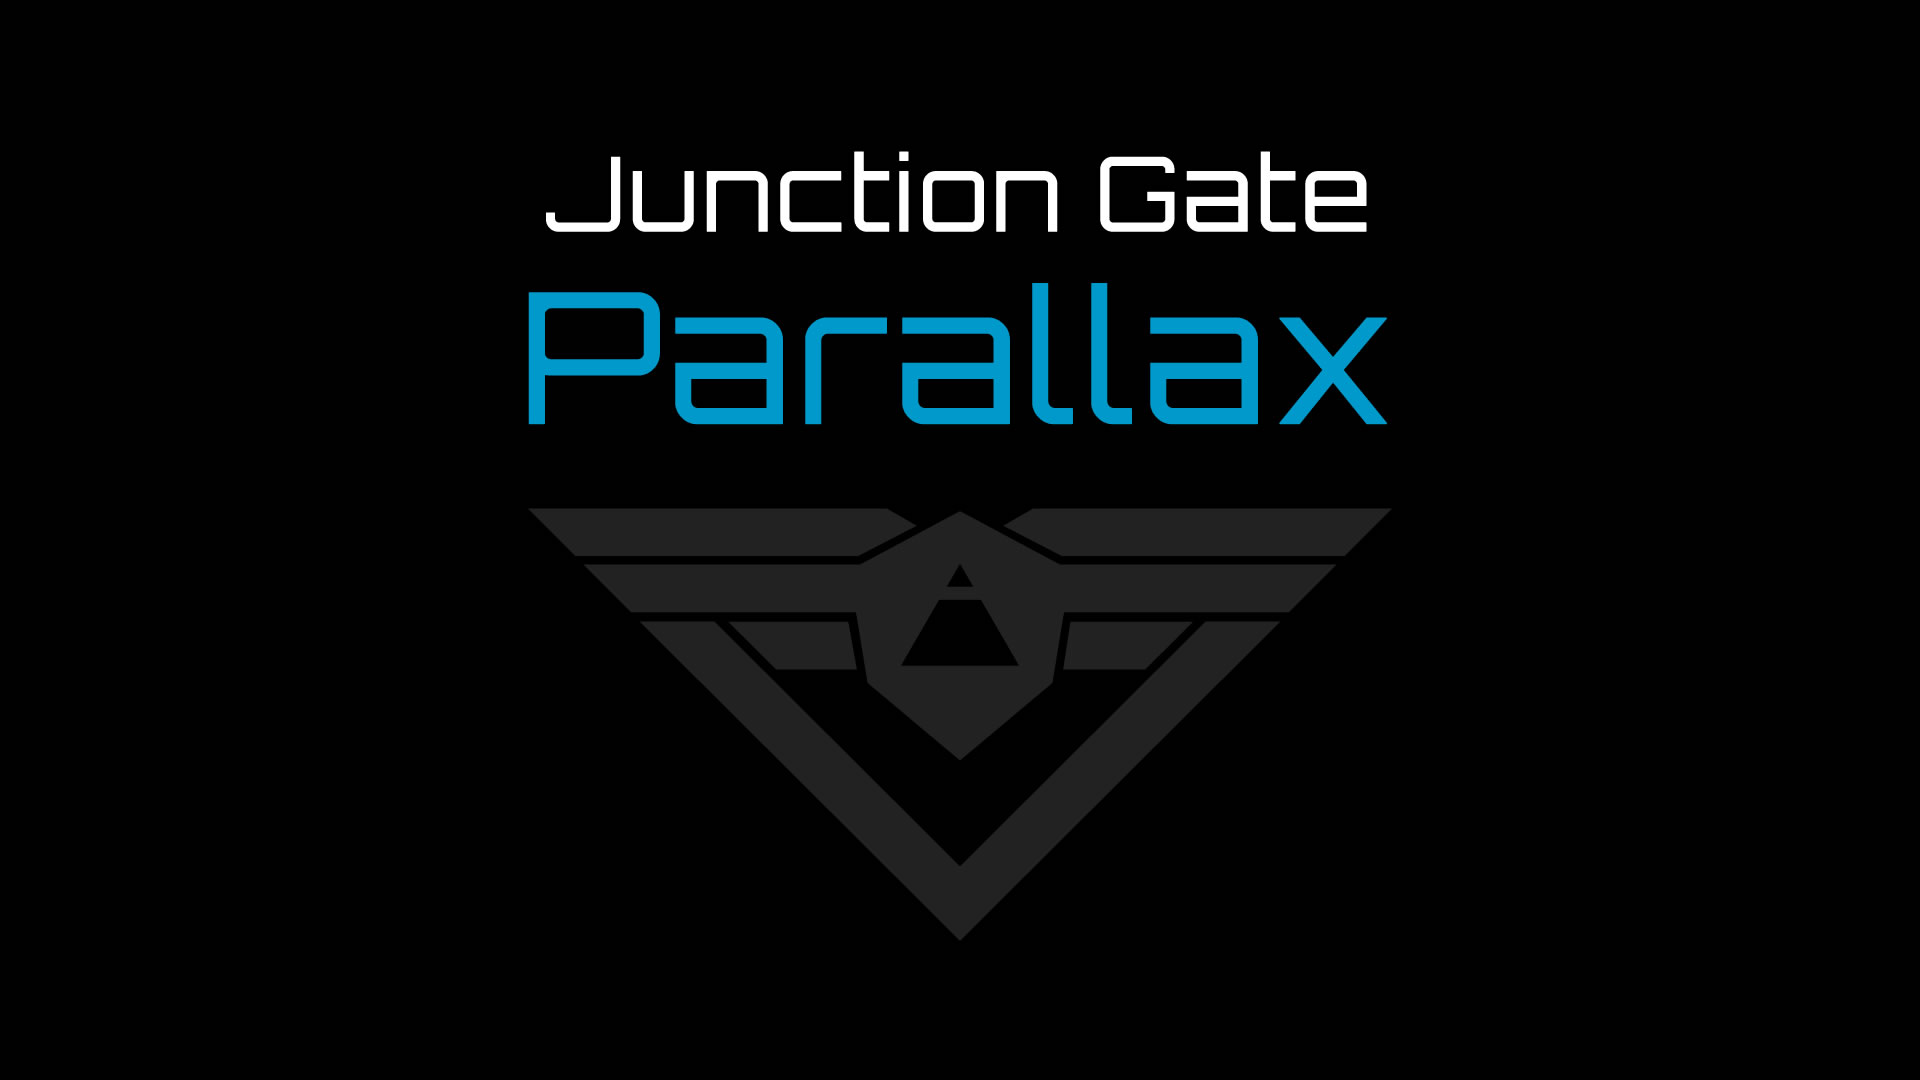 Junction Gate Parallax